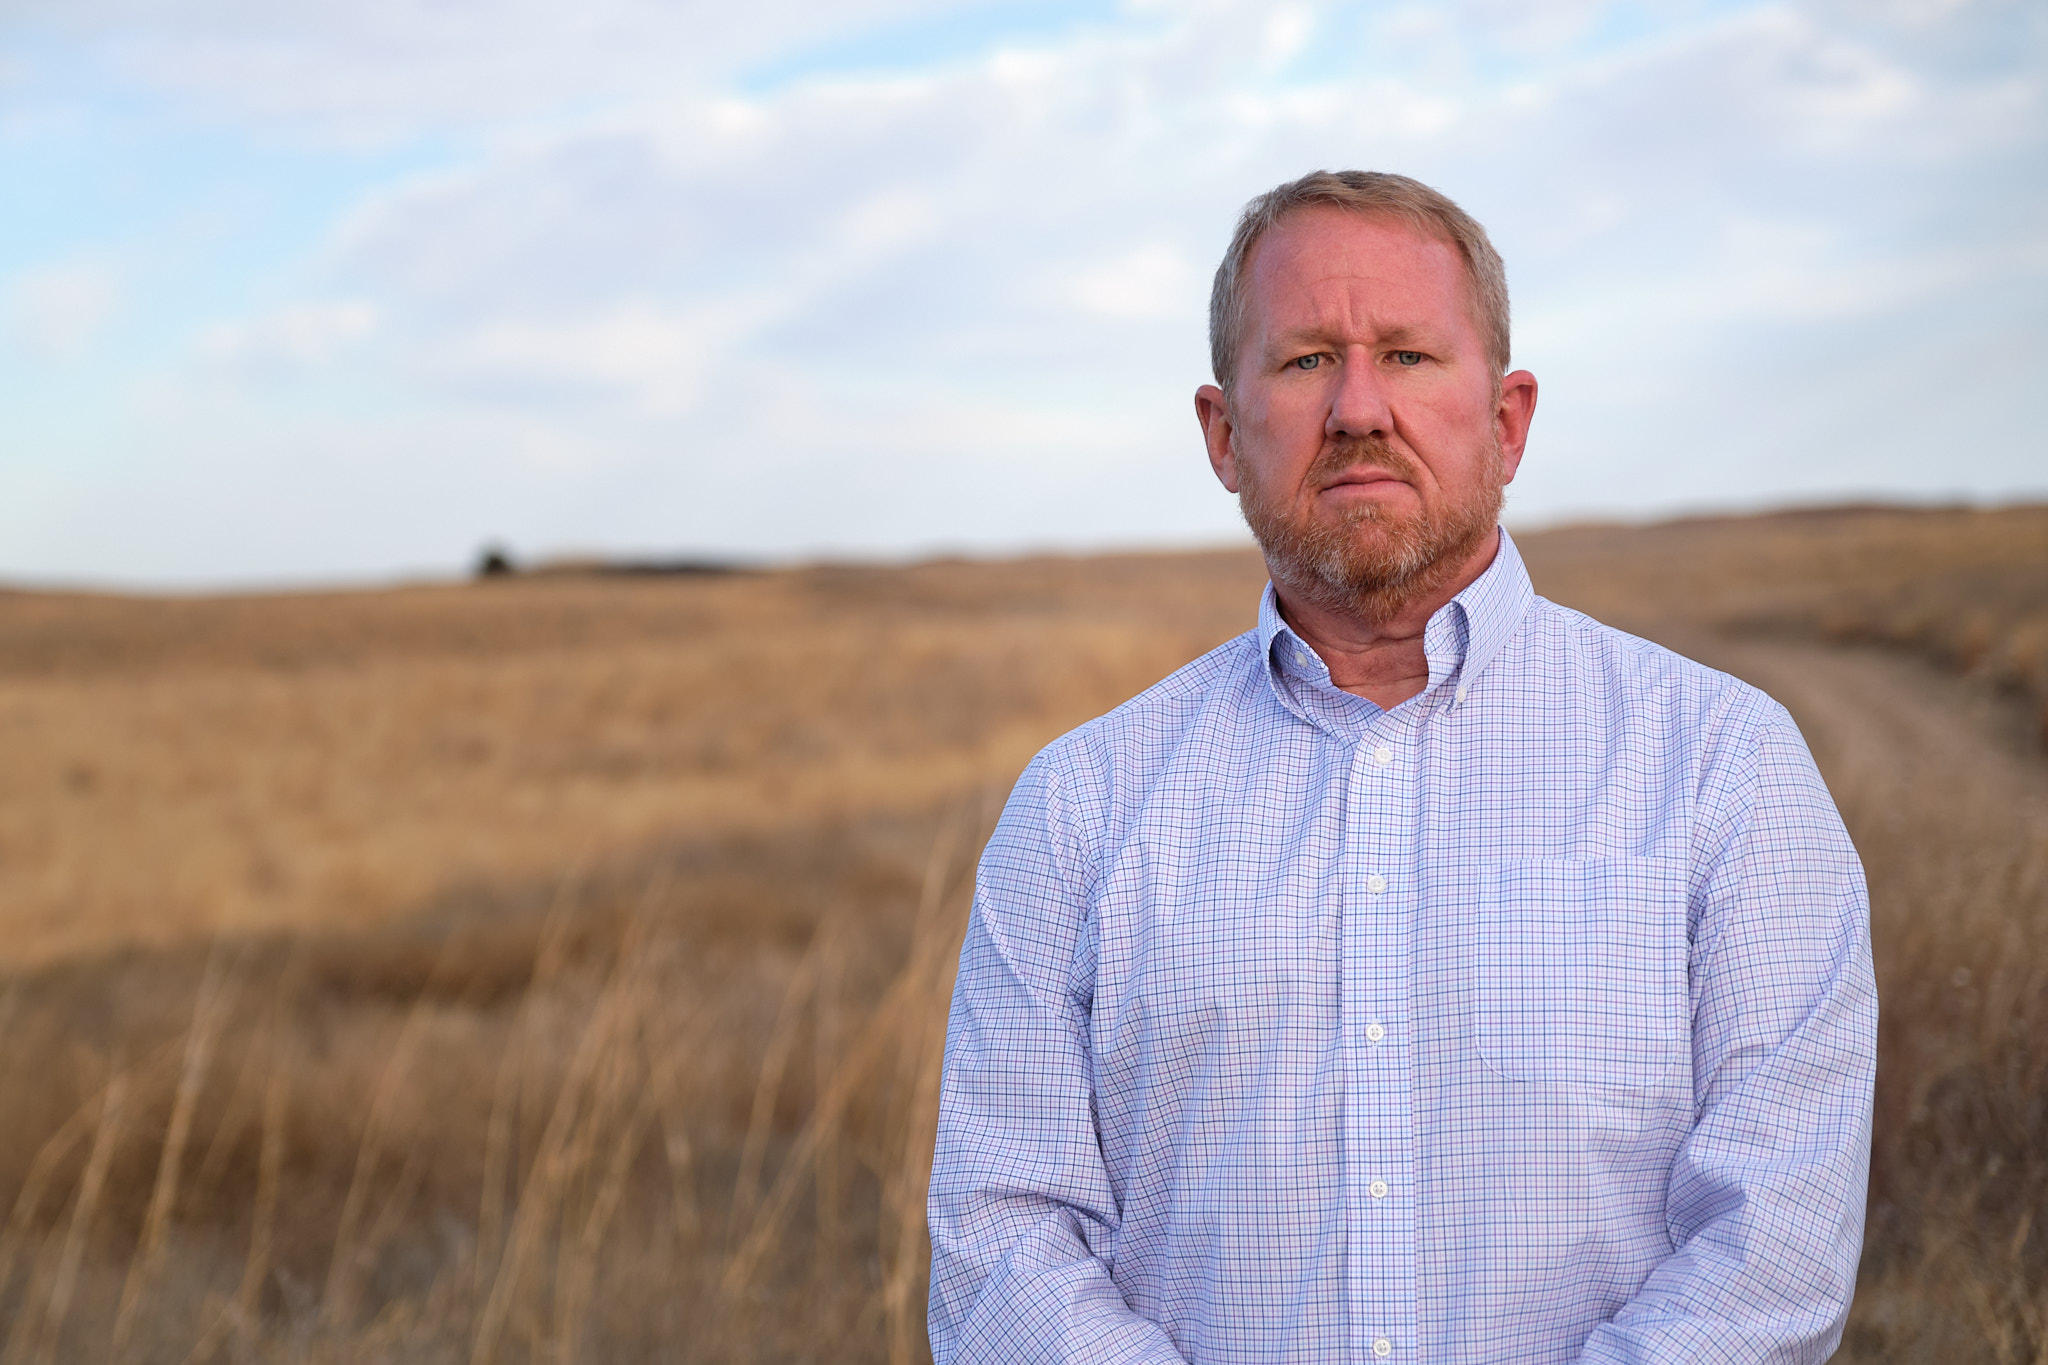 Hays City Manager Toby Dougherty at the R9 Ranch in Edwards County, Kansas. (Photo by Brian Grimmett, Kansas News Service)